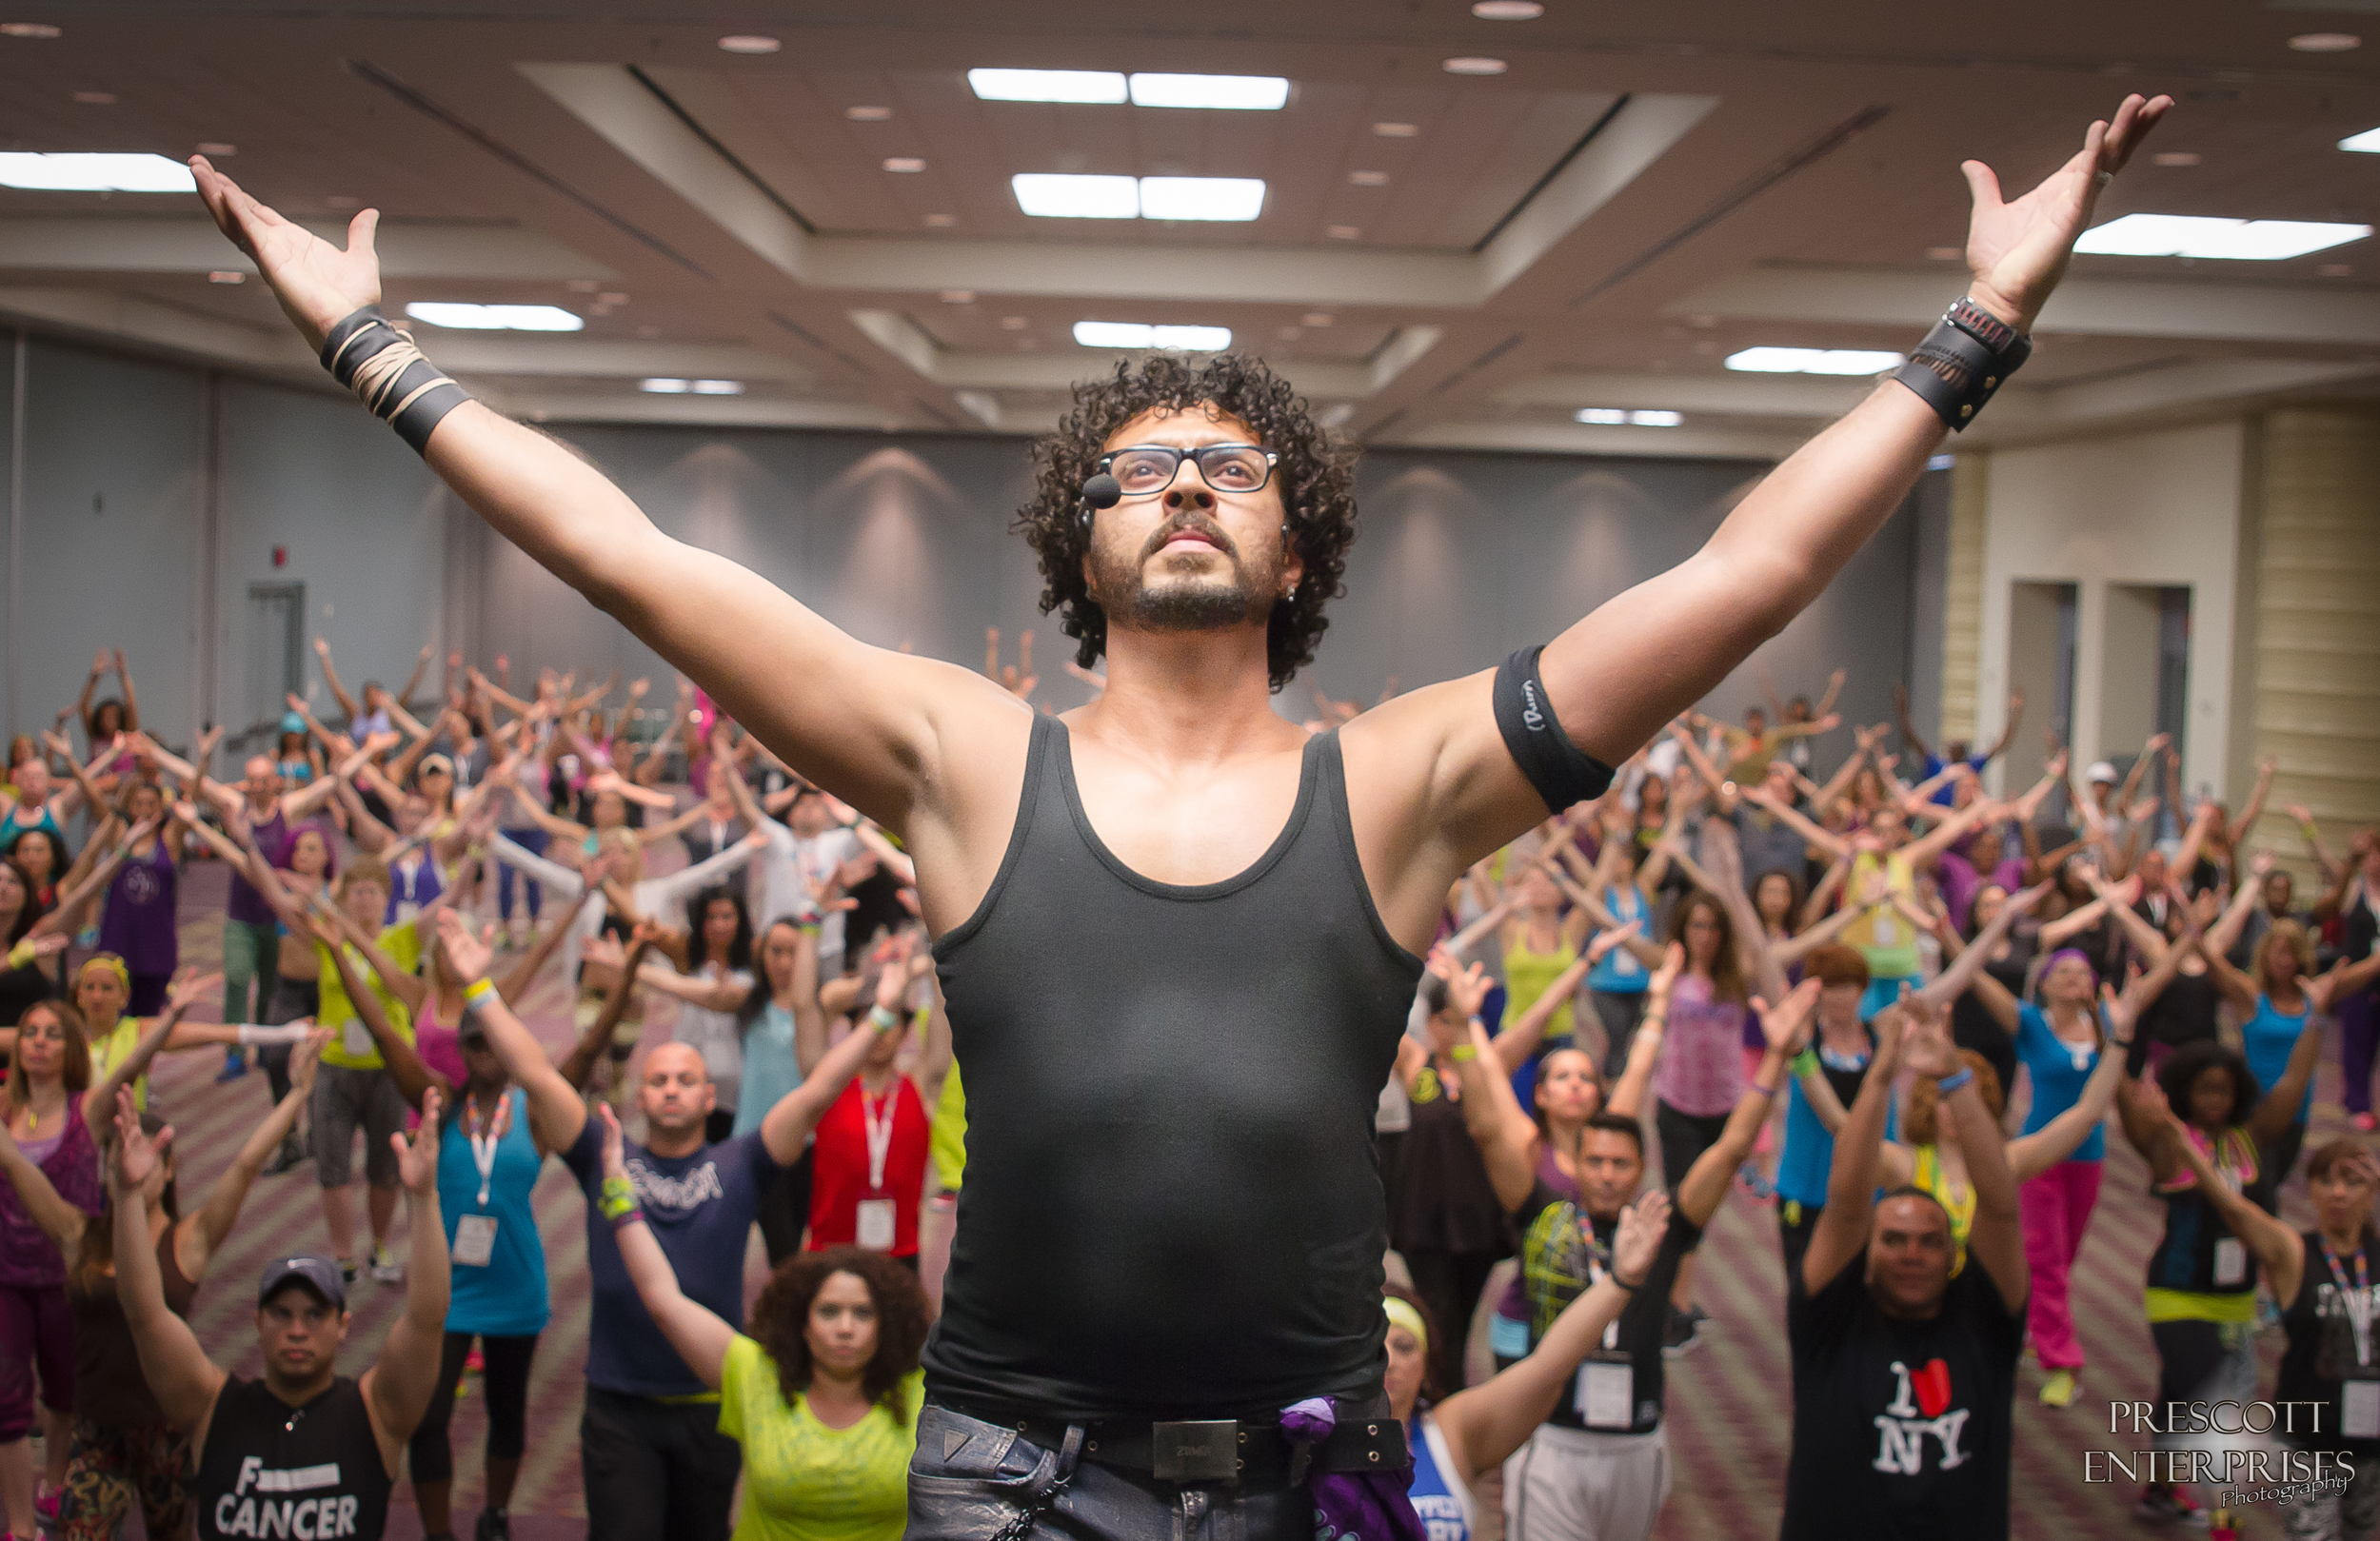 Passionate and natural images can be the most dynamic and stunning. Zumba presenter Fabio Barros never fails to show his passion for dance whenever he takes the stage.